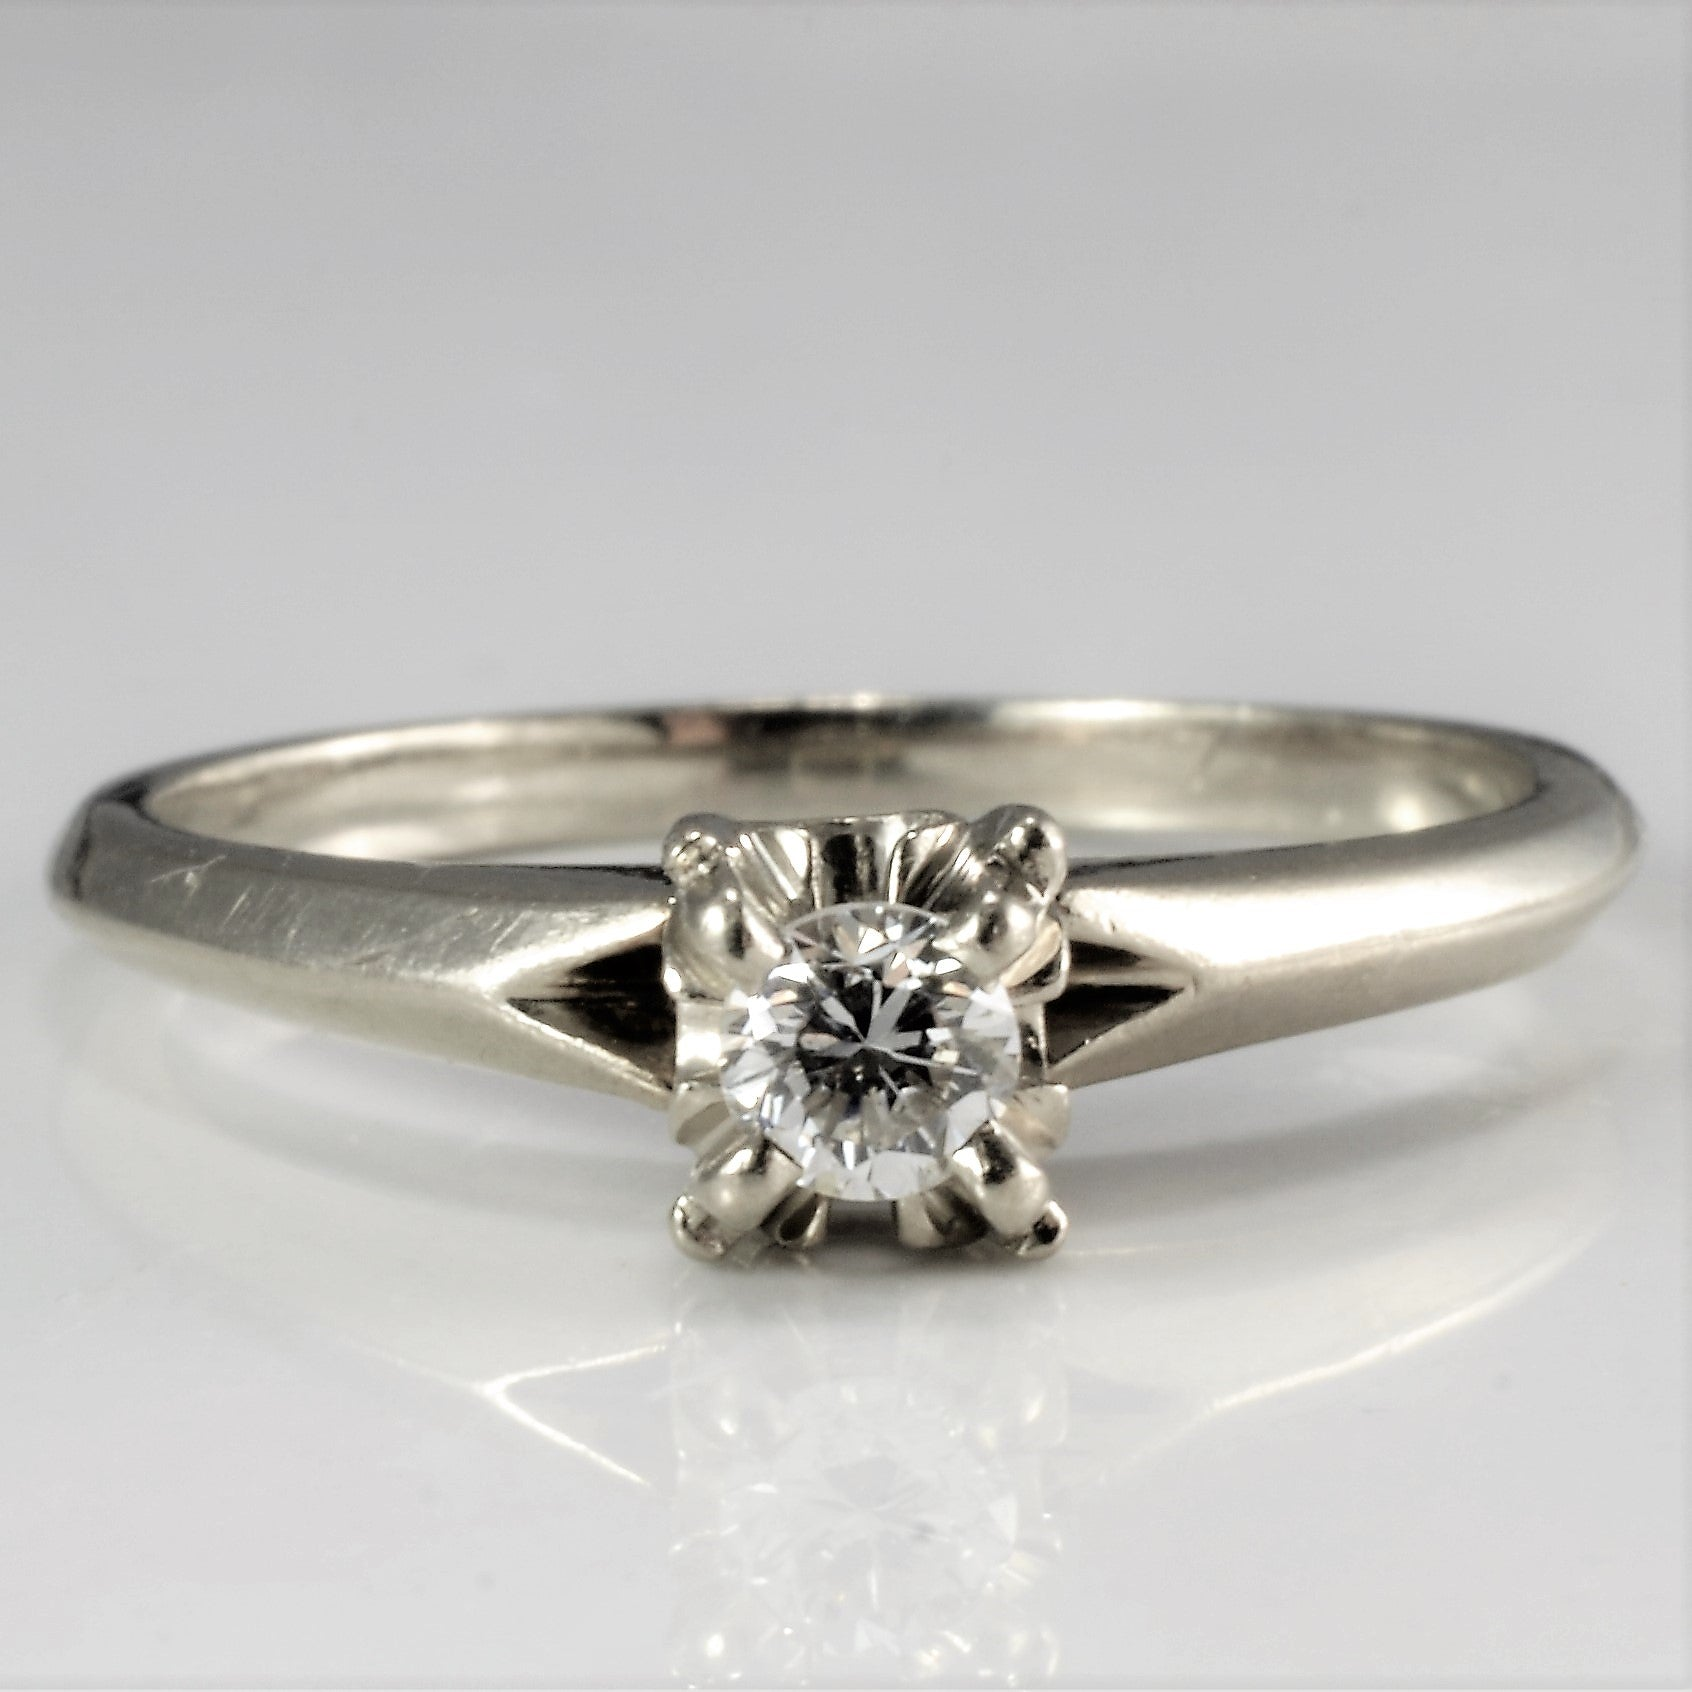 Vintage Solitaire Diamond Ring | 0.13 ct, SZ 7 |